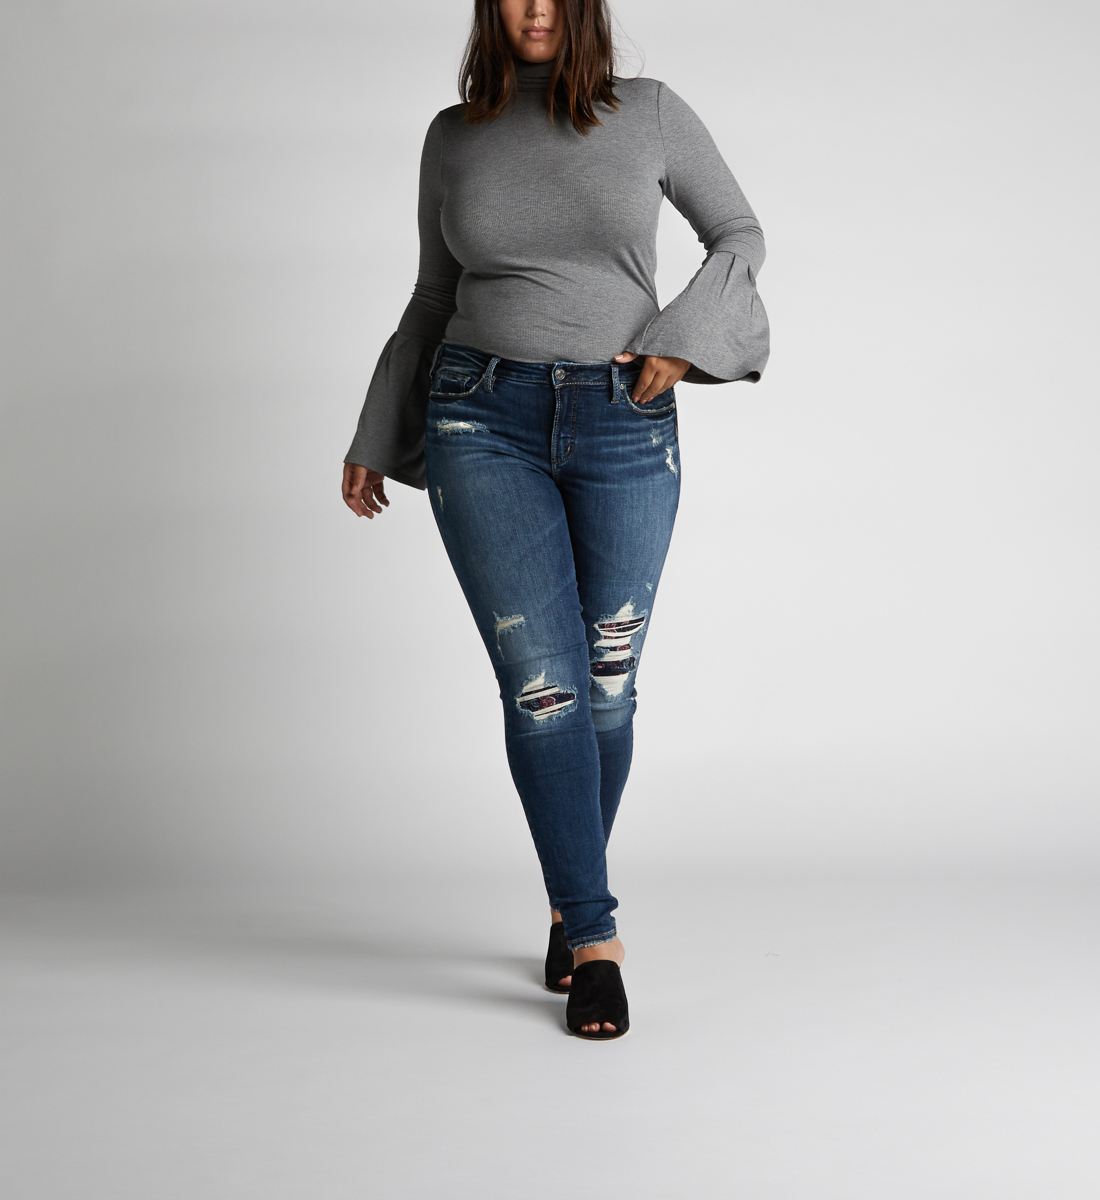 eaaabf6a756 Avery High Rise Skinny Leg Jeans Plus Size